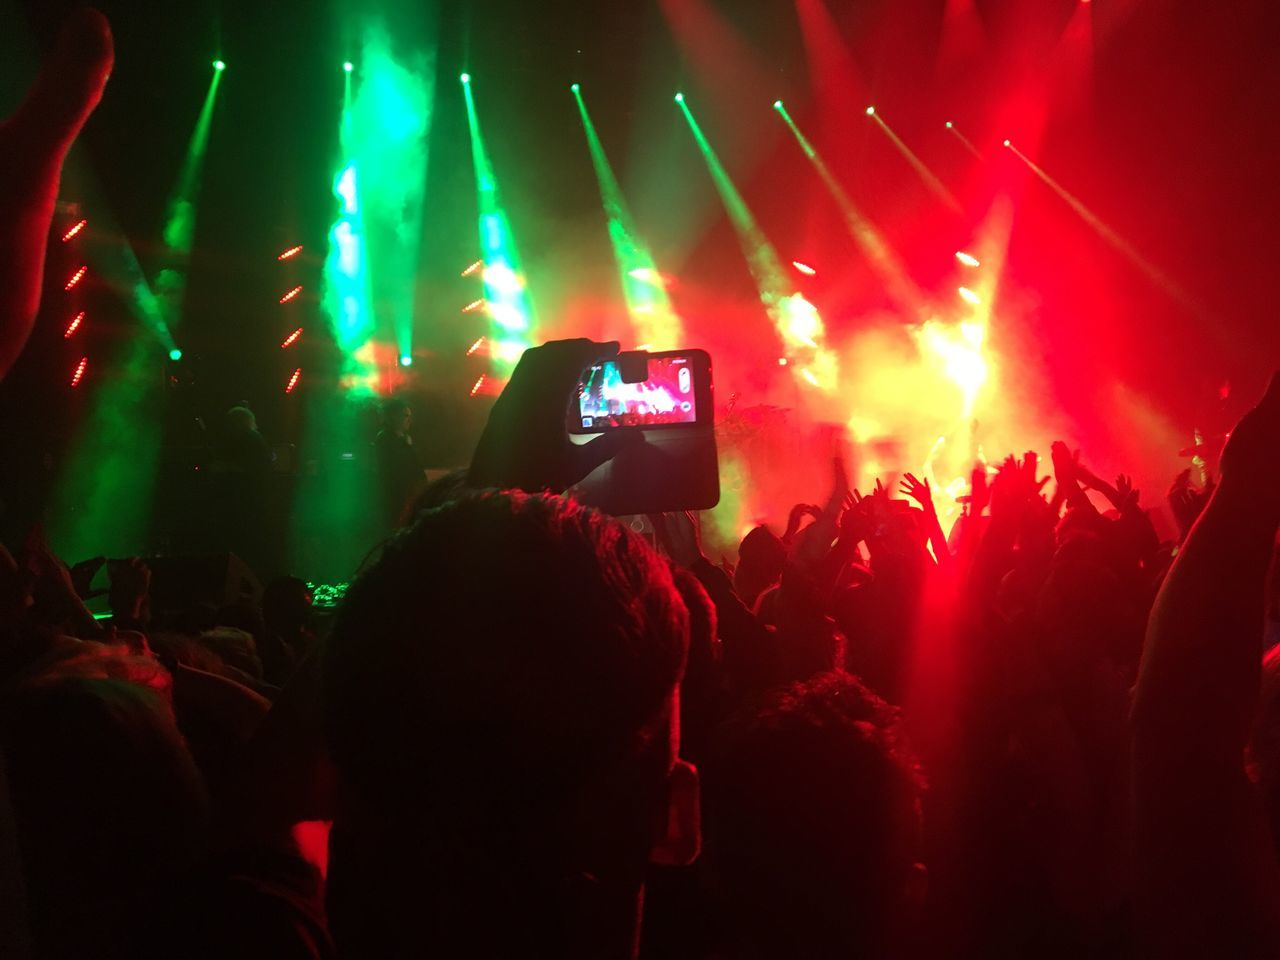 Person Crowd Wireless Technology Night Mobile Phone Smart Phone Portable Information Device Illuminated Stage - Performance Space Music Popular Music Concert Stage Light Large Group Of People Fun Technology Arts Culture And Entertainment Spectator Performance Communication Fan - Enthusiast